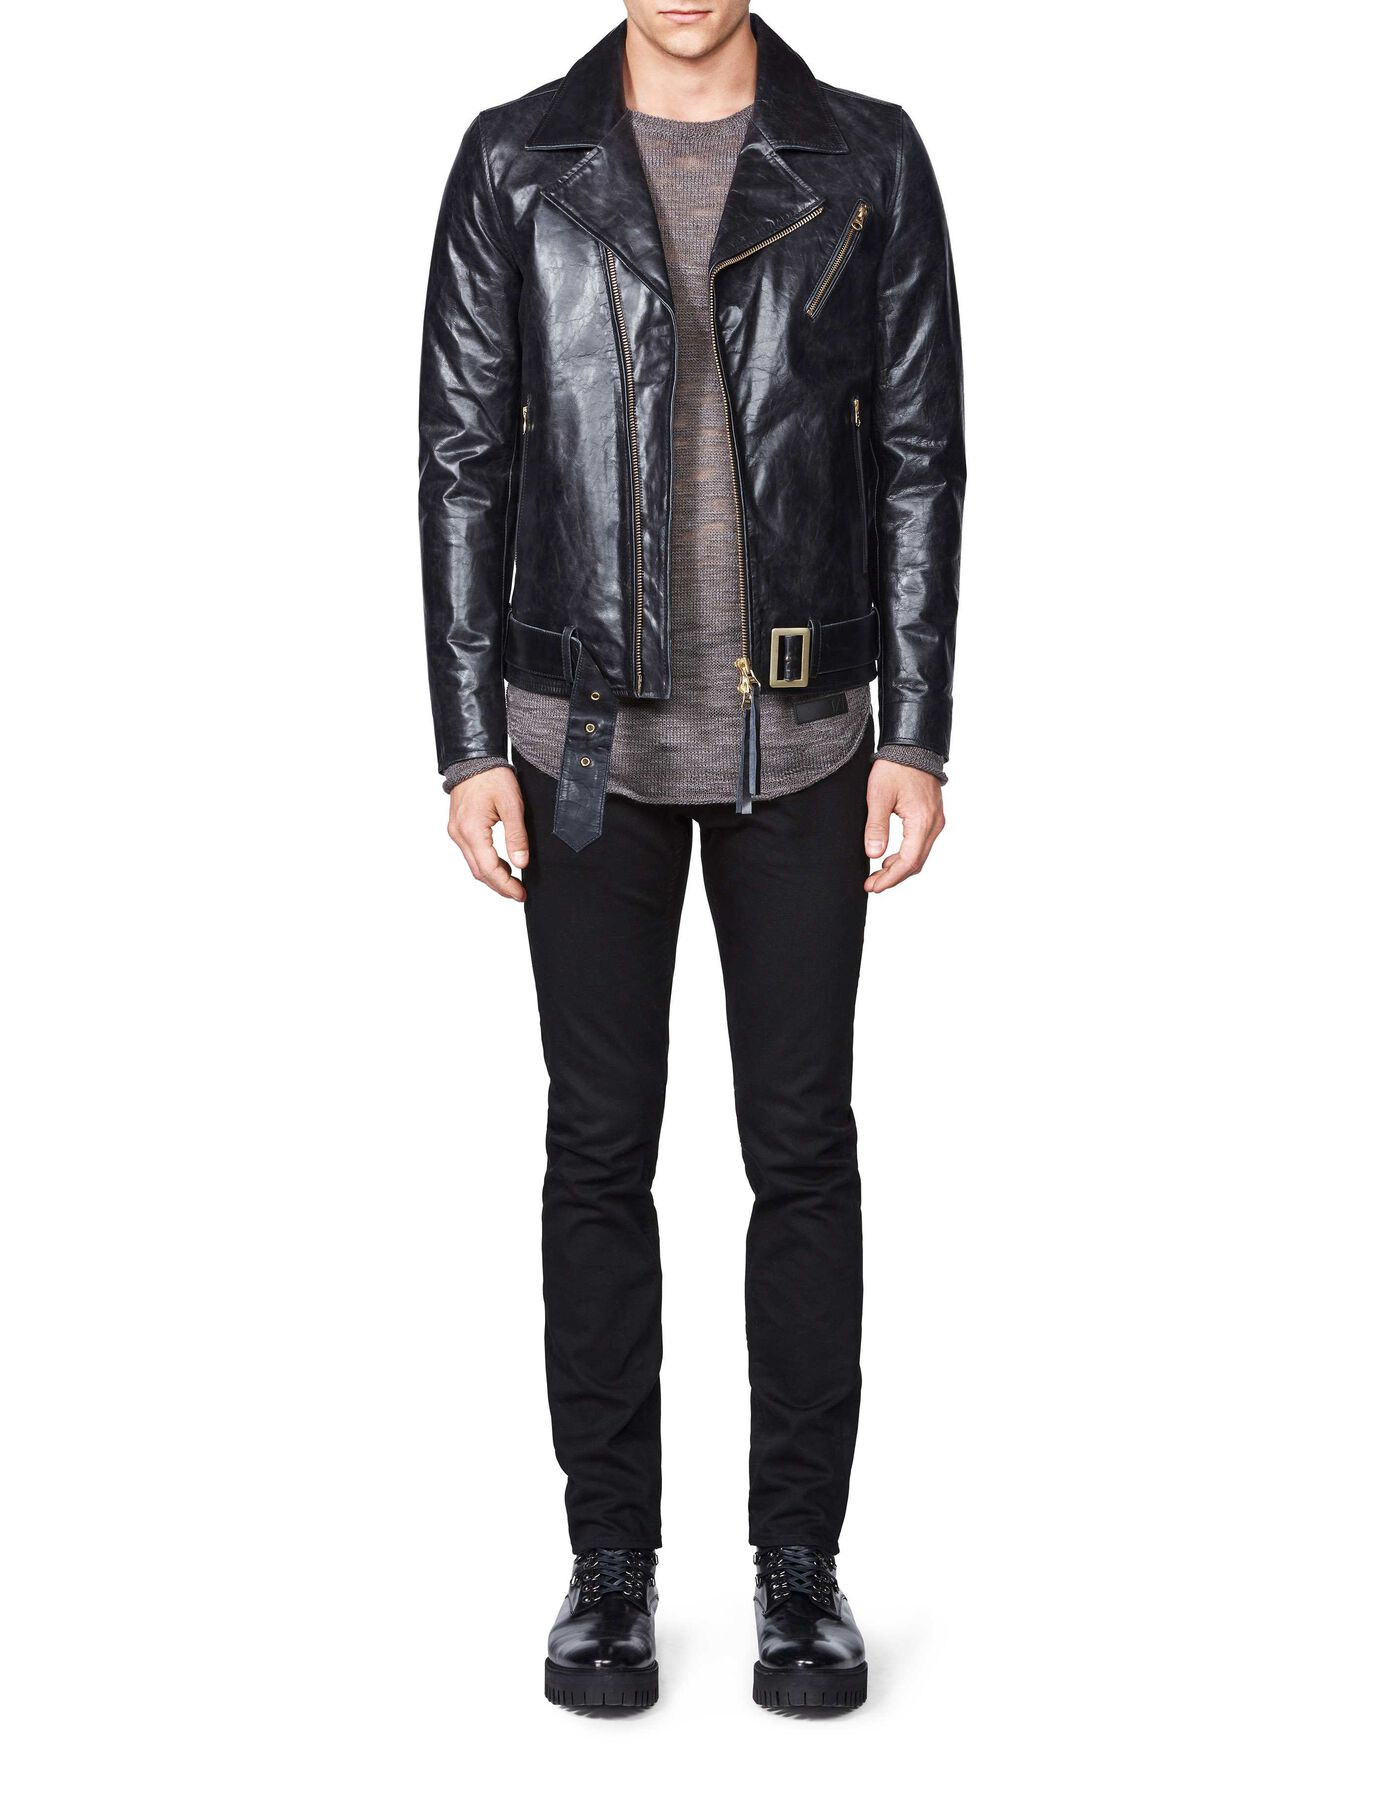 Hellish leather jacket in Black from Tiger of Sweden